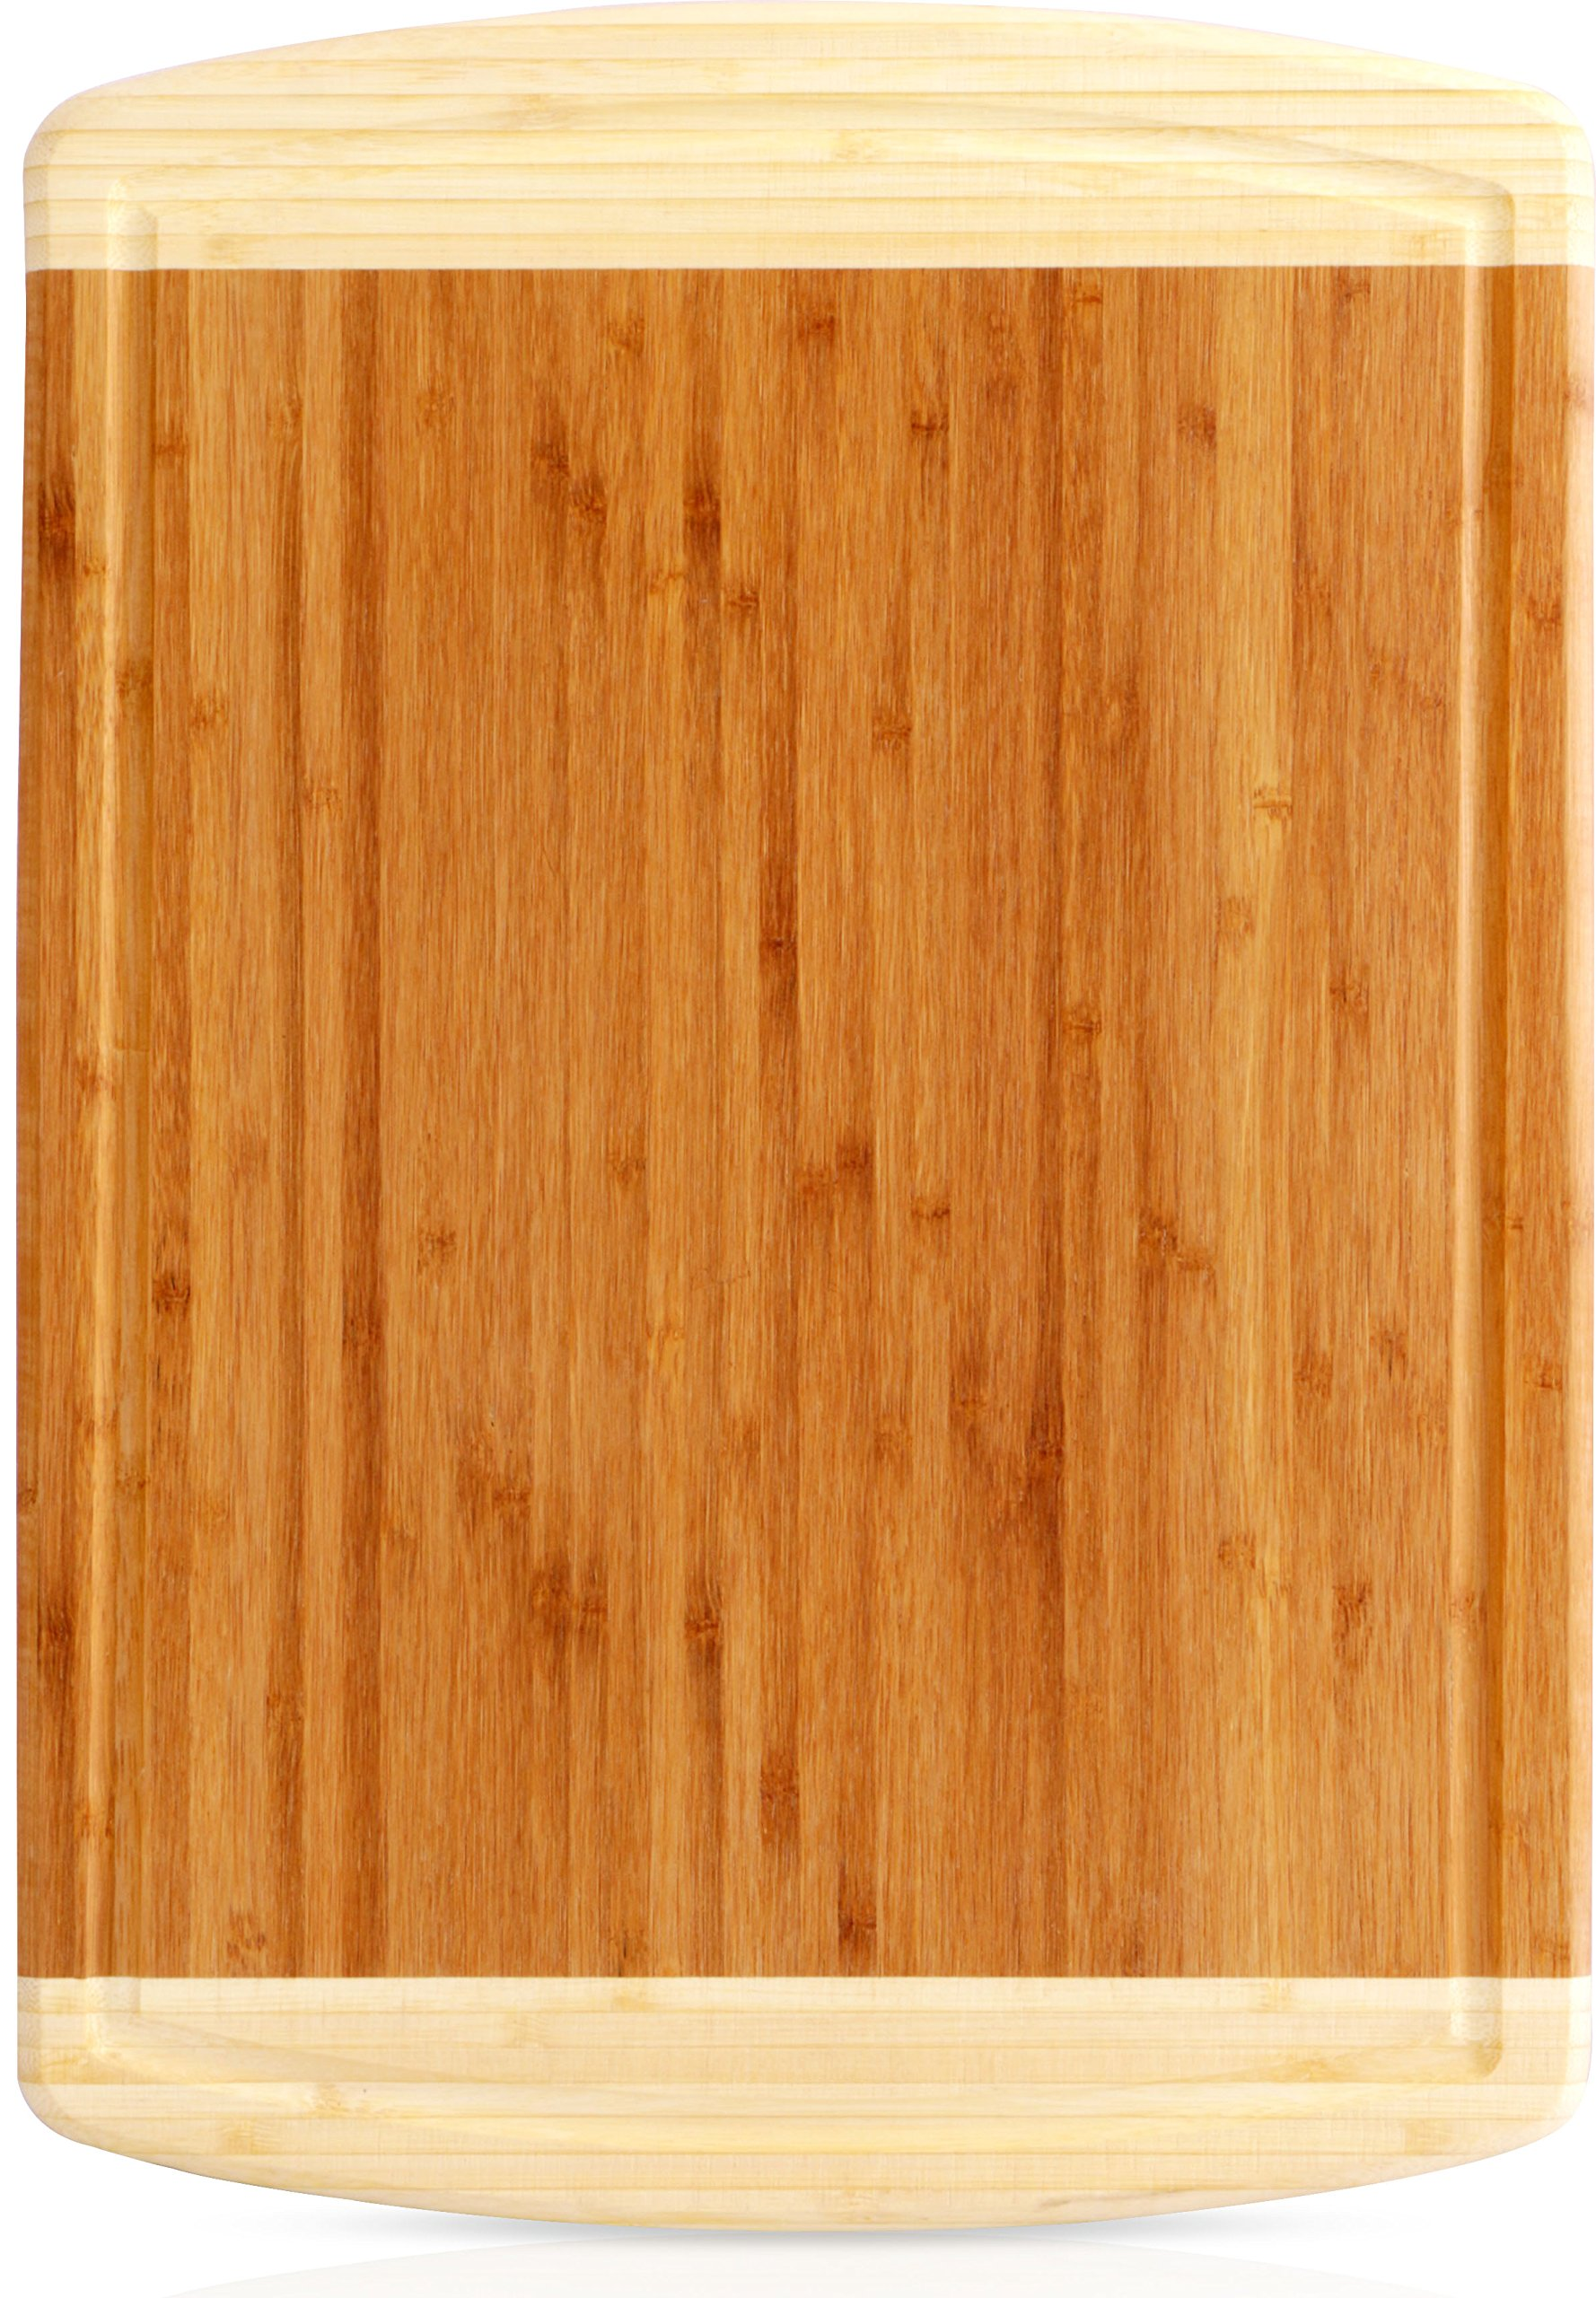 Utopia Kitchen Bamboo Cutting Board Large Bamboo Cutting Board for Chicken, Meat, and Vegetables by Utopia Kitchen (Image #2)